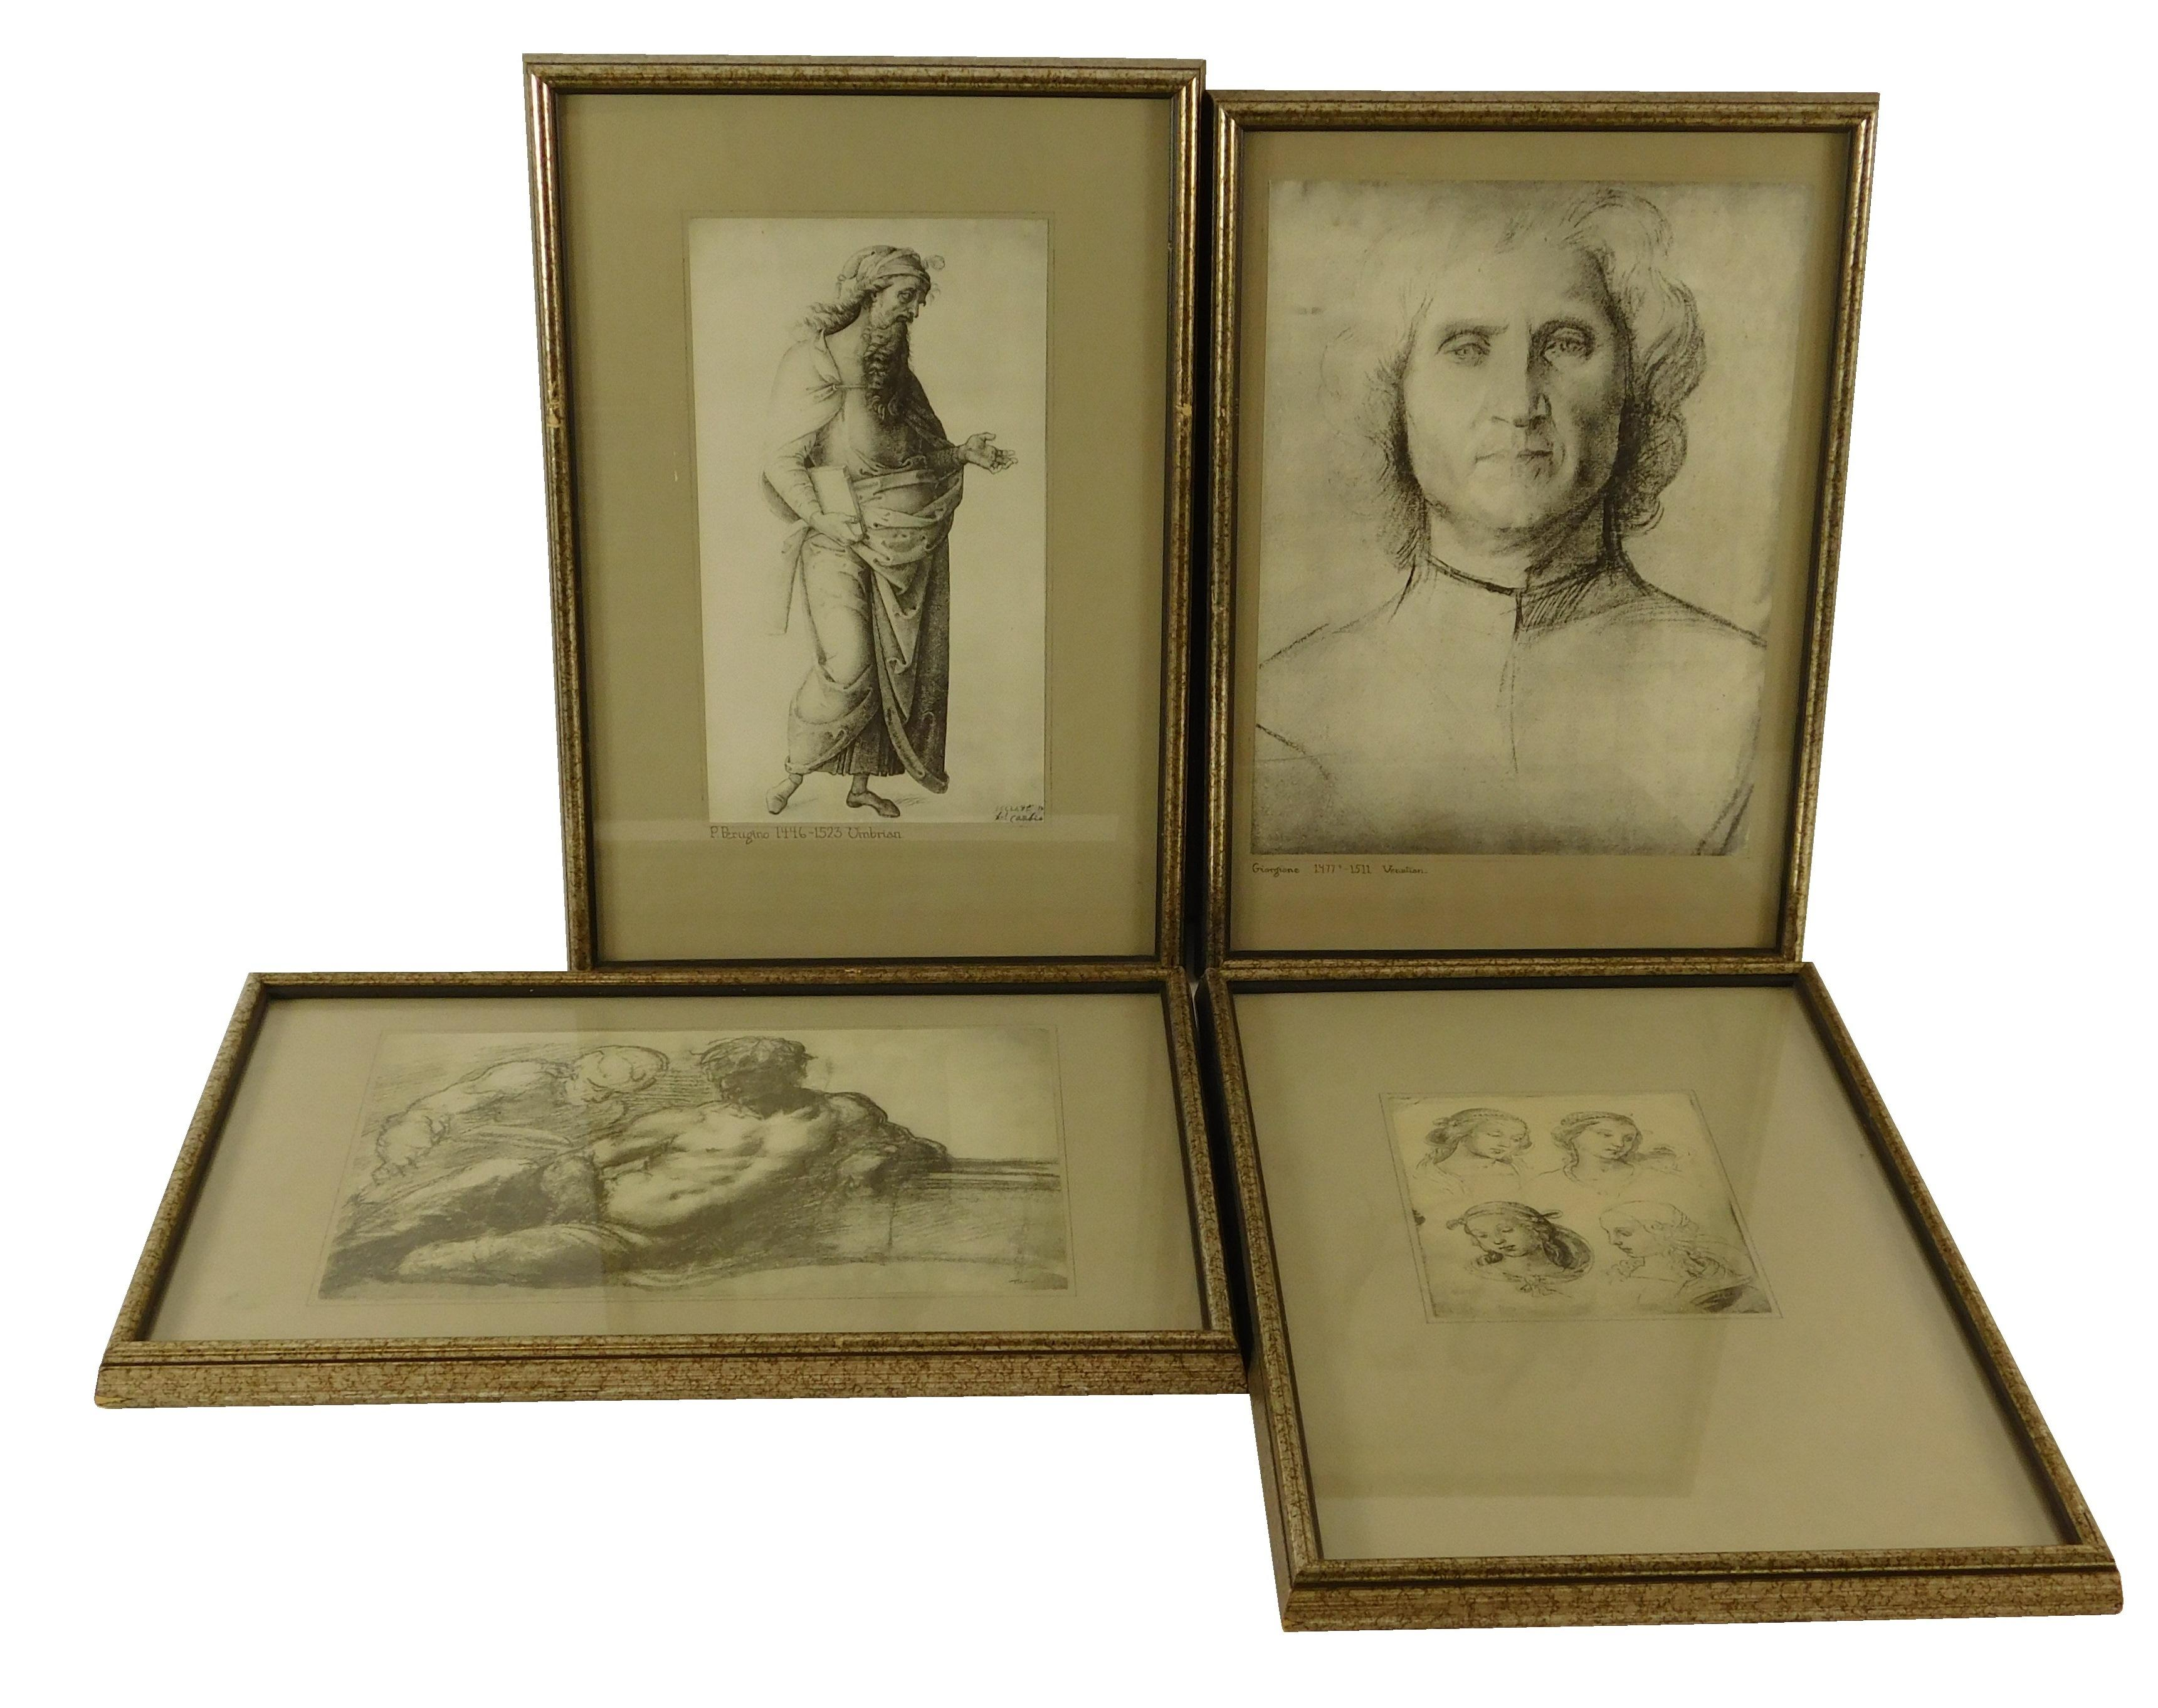 Four framed reproduction prints of drawings by Italian Old Masters, including: after Giorgione (Venetian, 1477-1511), portrait of a...